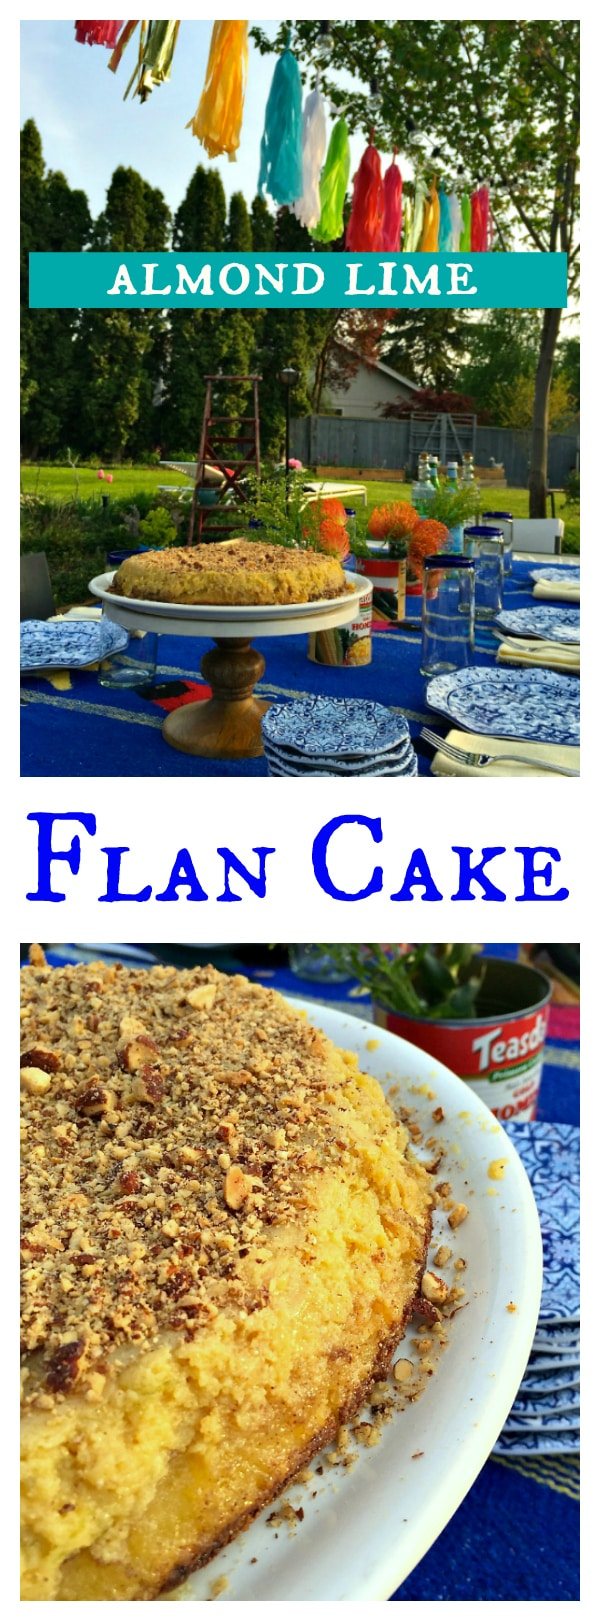 PARTY: Almond Lime Flan Cake